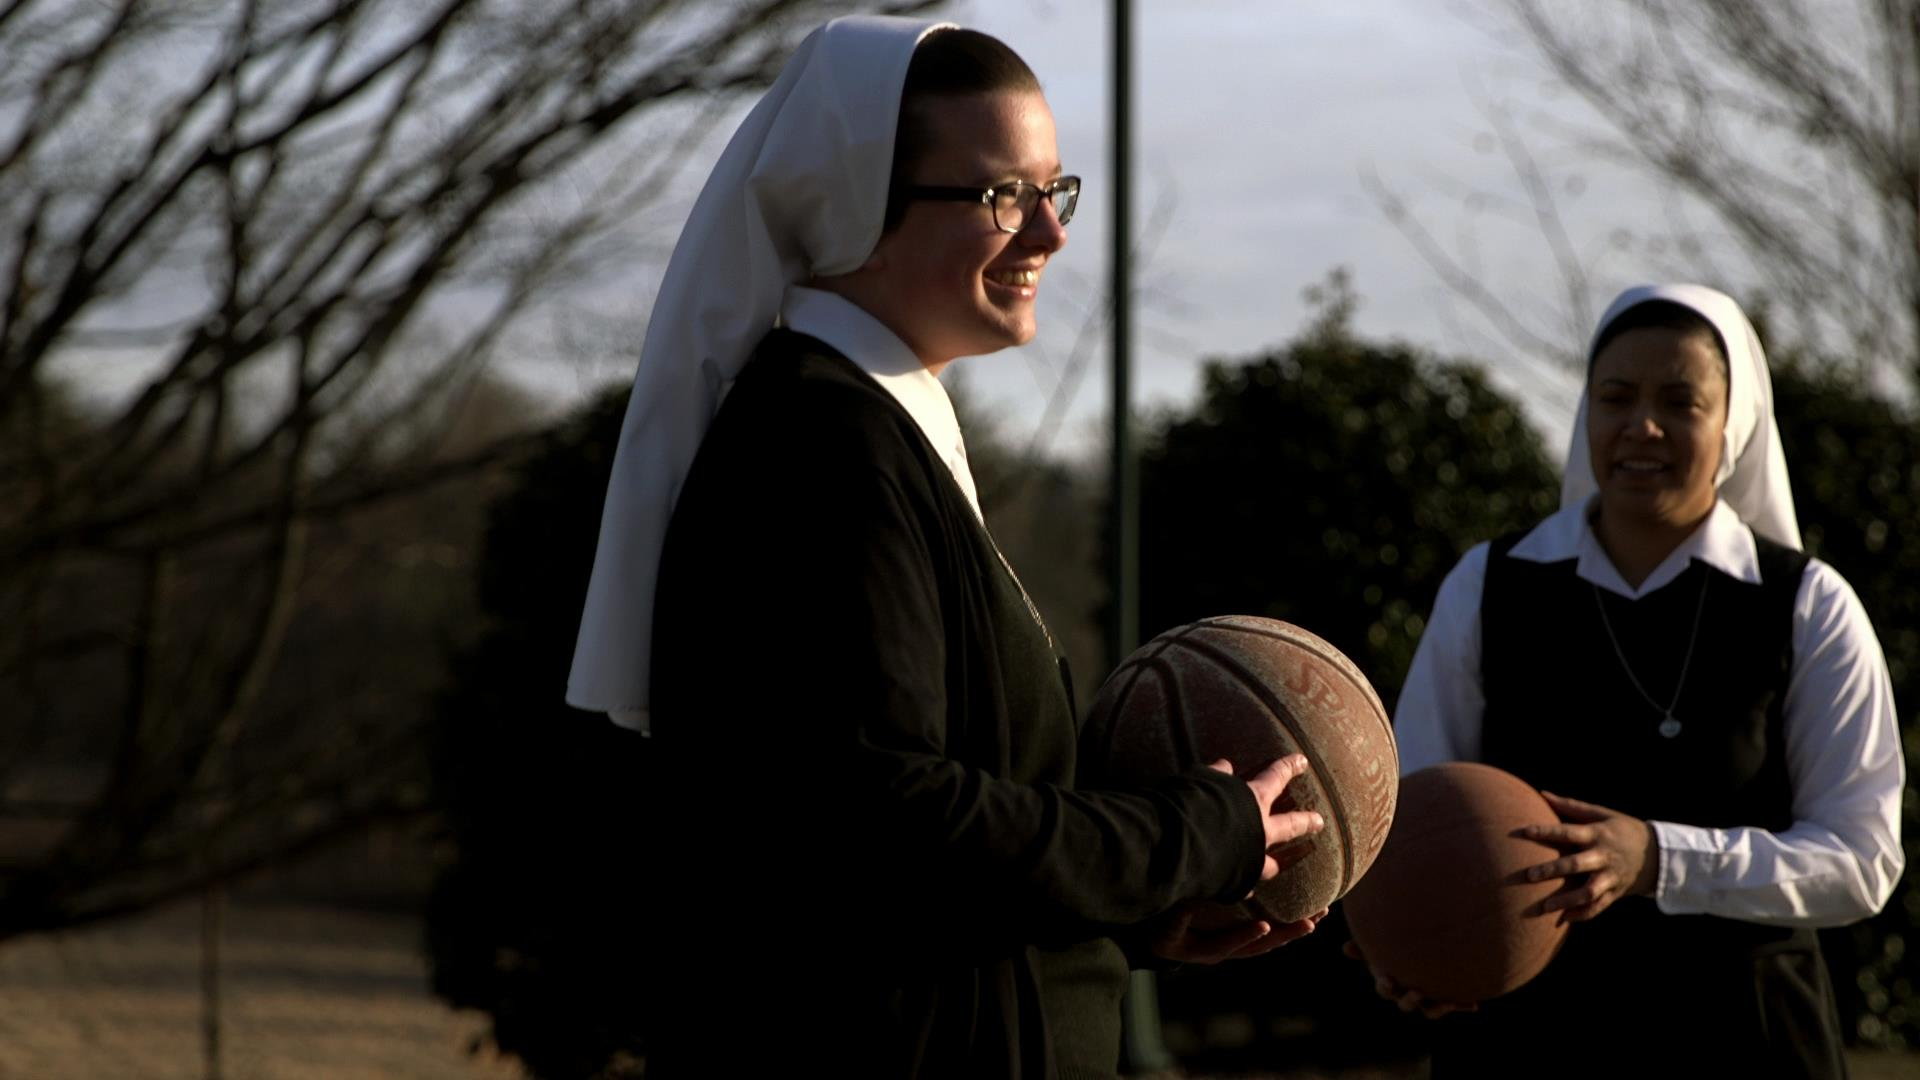 more young christians heed call to become priests and nuns - nbc news